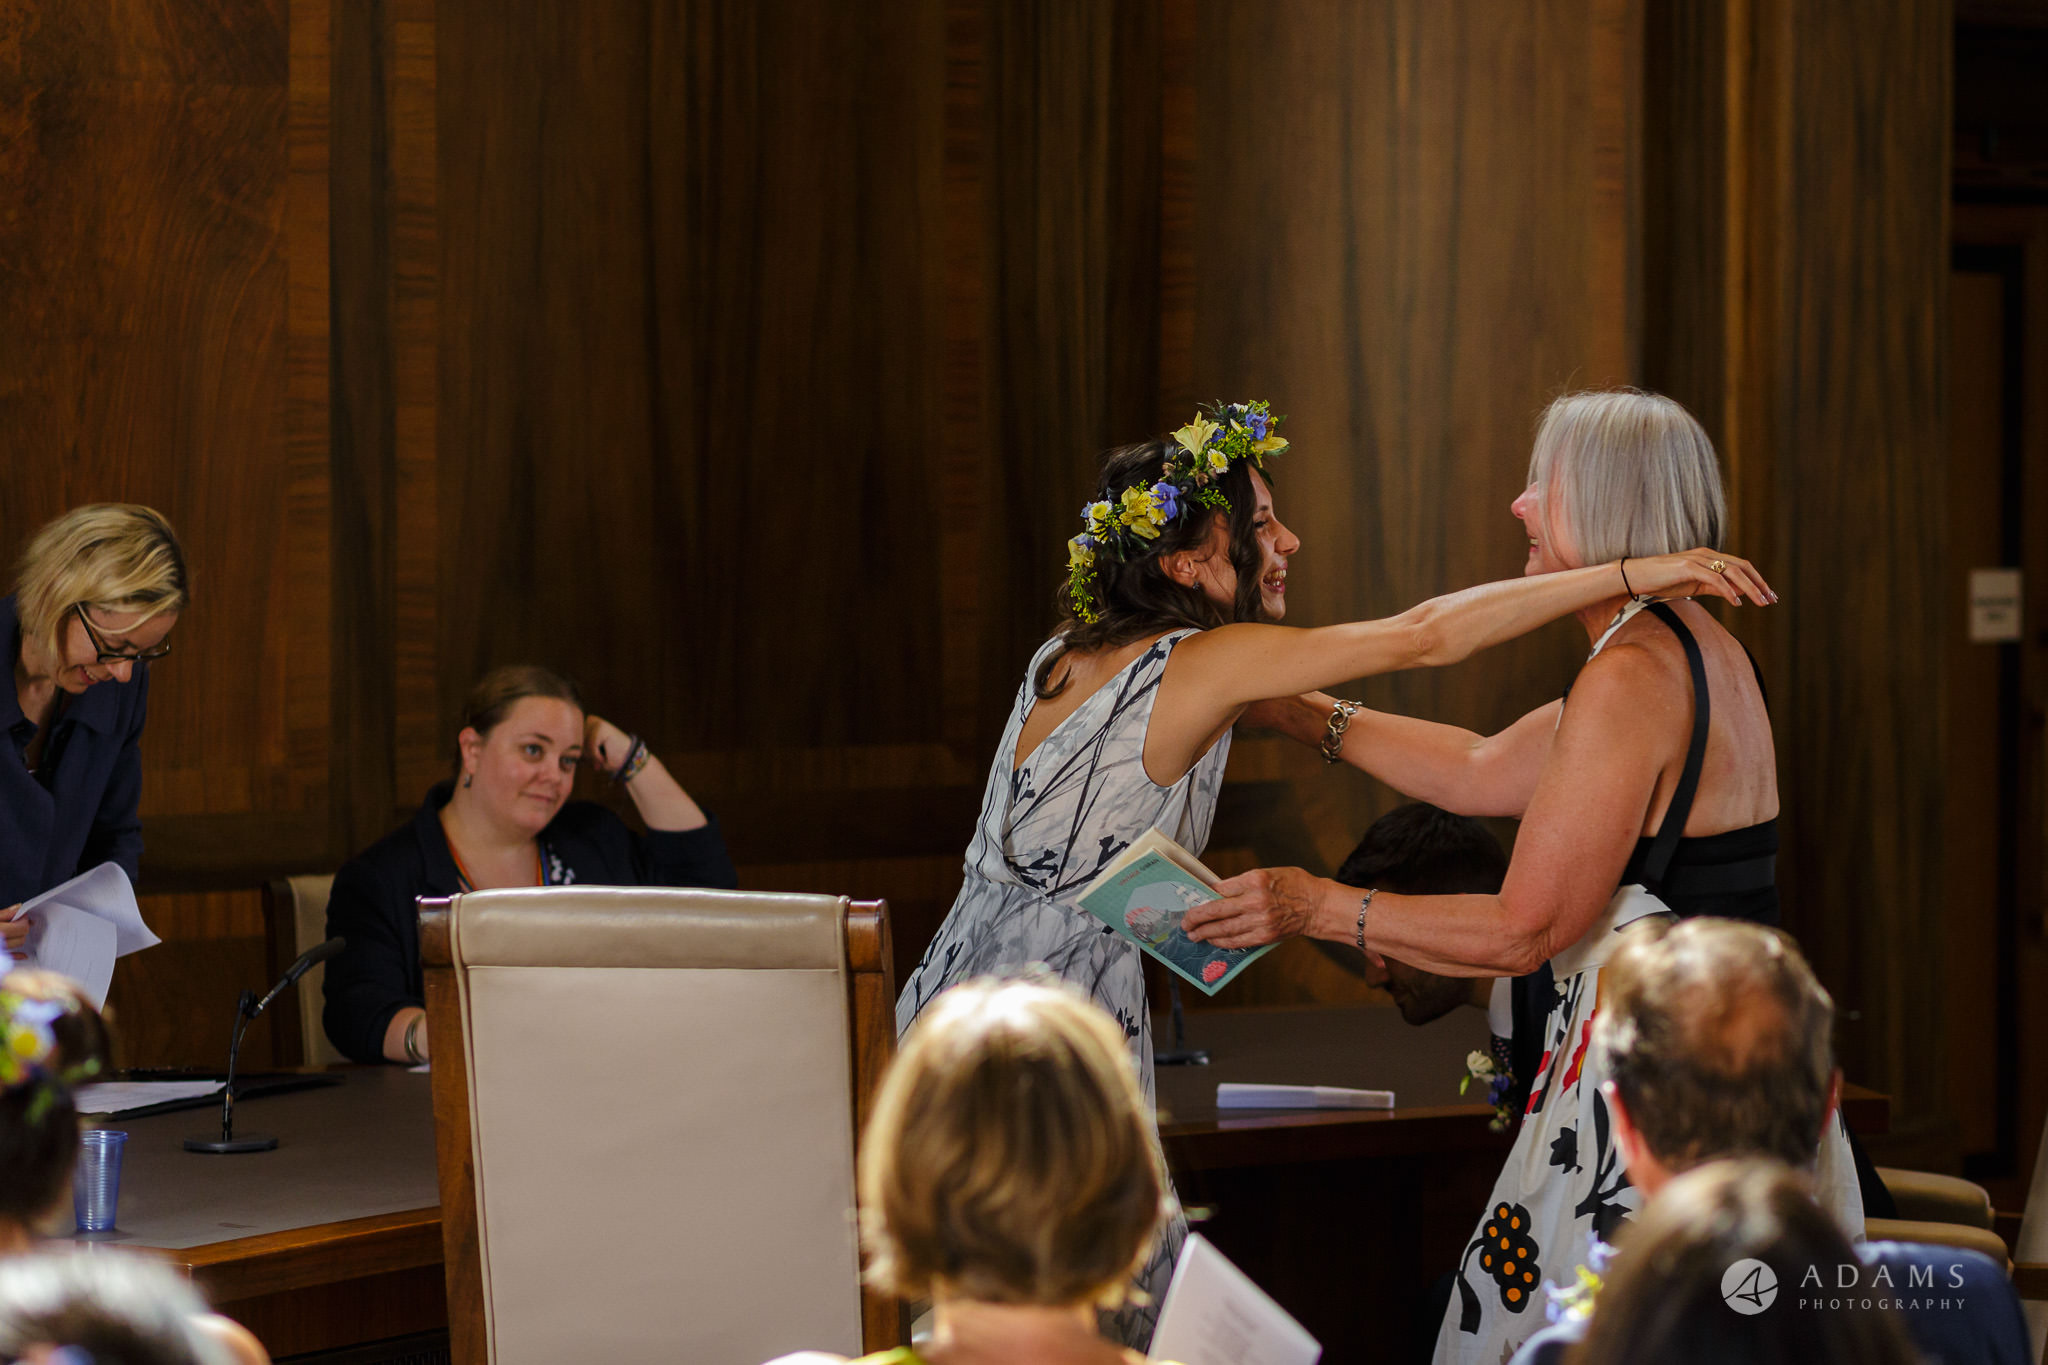 Clissold house wedding bride is going to hug the mother of the groom